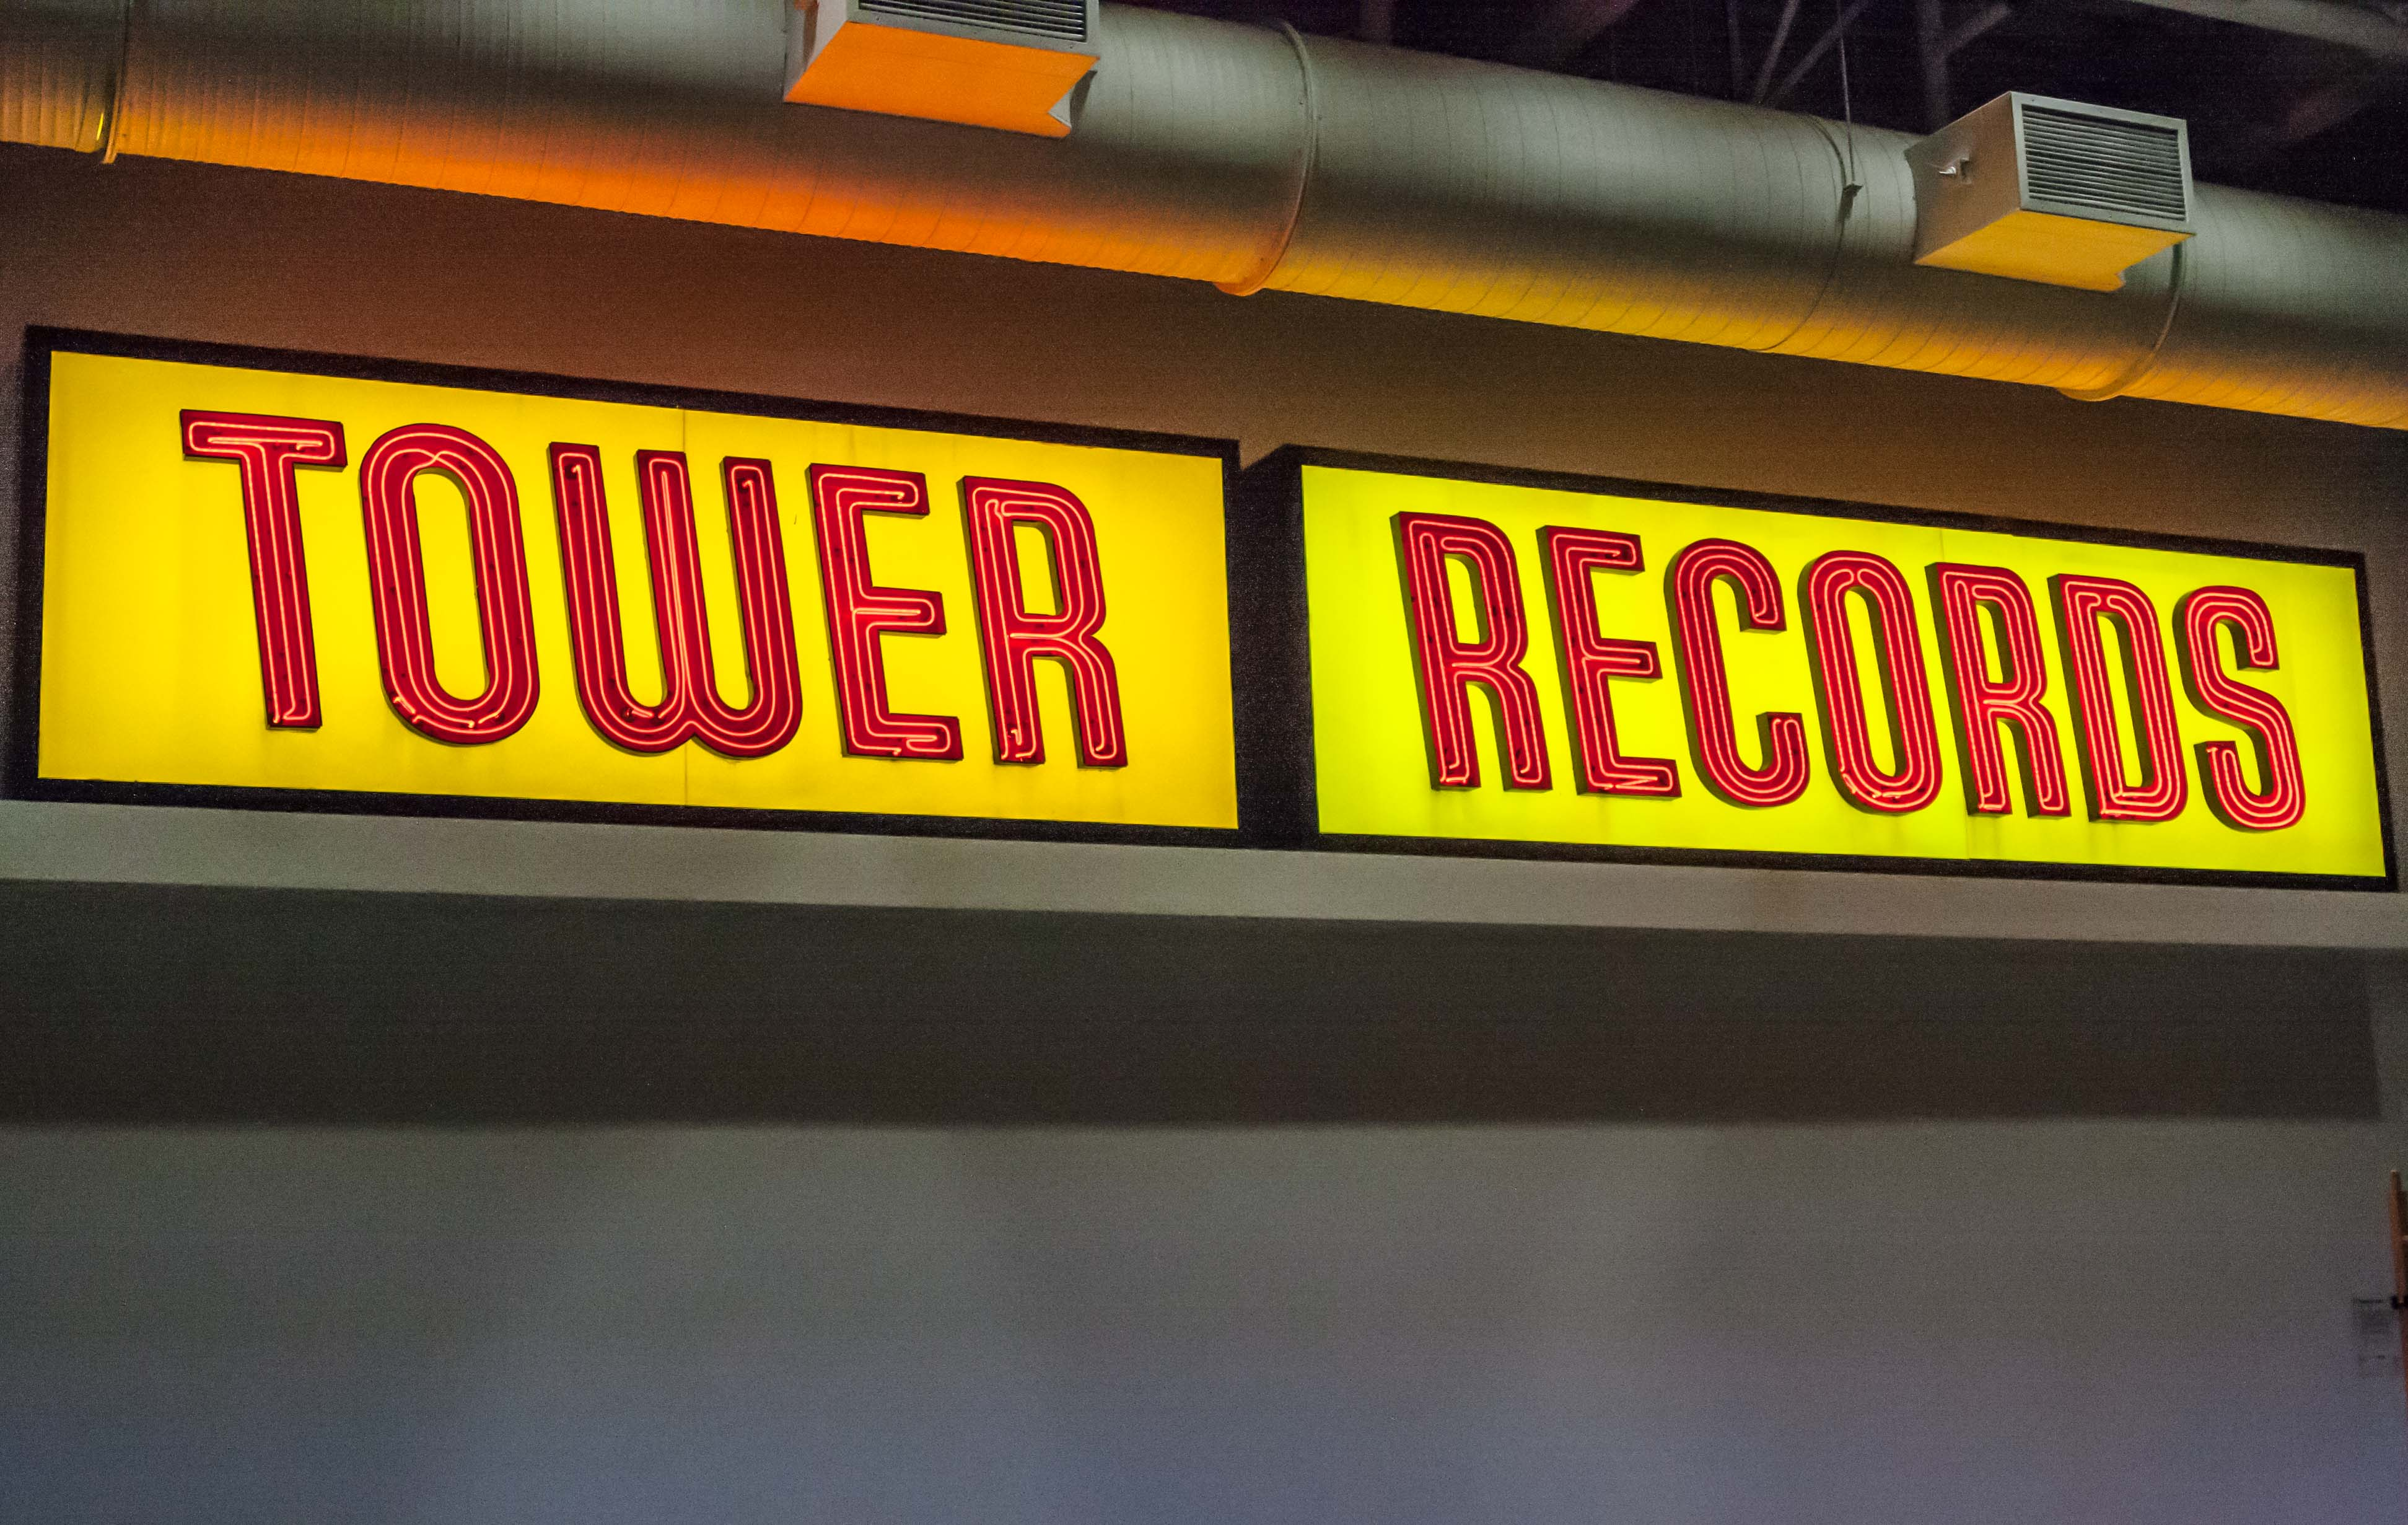 The original signage of Tower Records now hangs in the concourse of The Golden 1 Center, home of the Sacramento Kings.